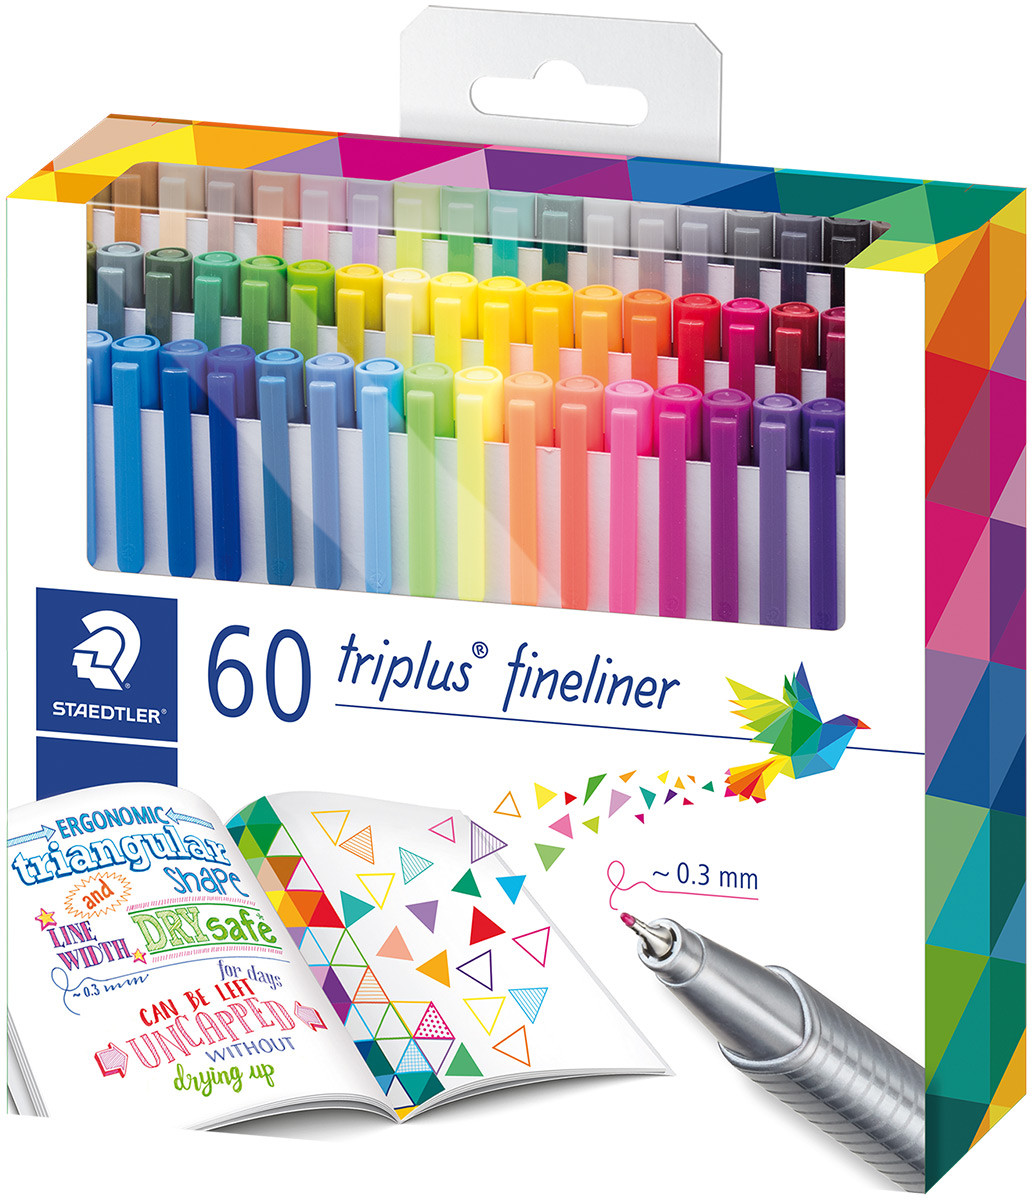 Staedtler Triplus Fineliner Pens - Assorted Colours (Pack of 60)